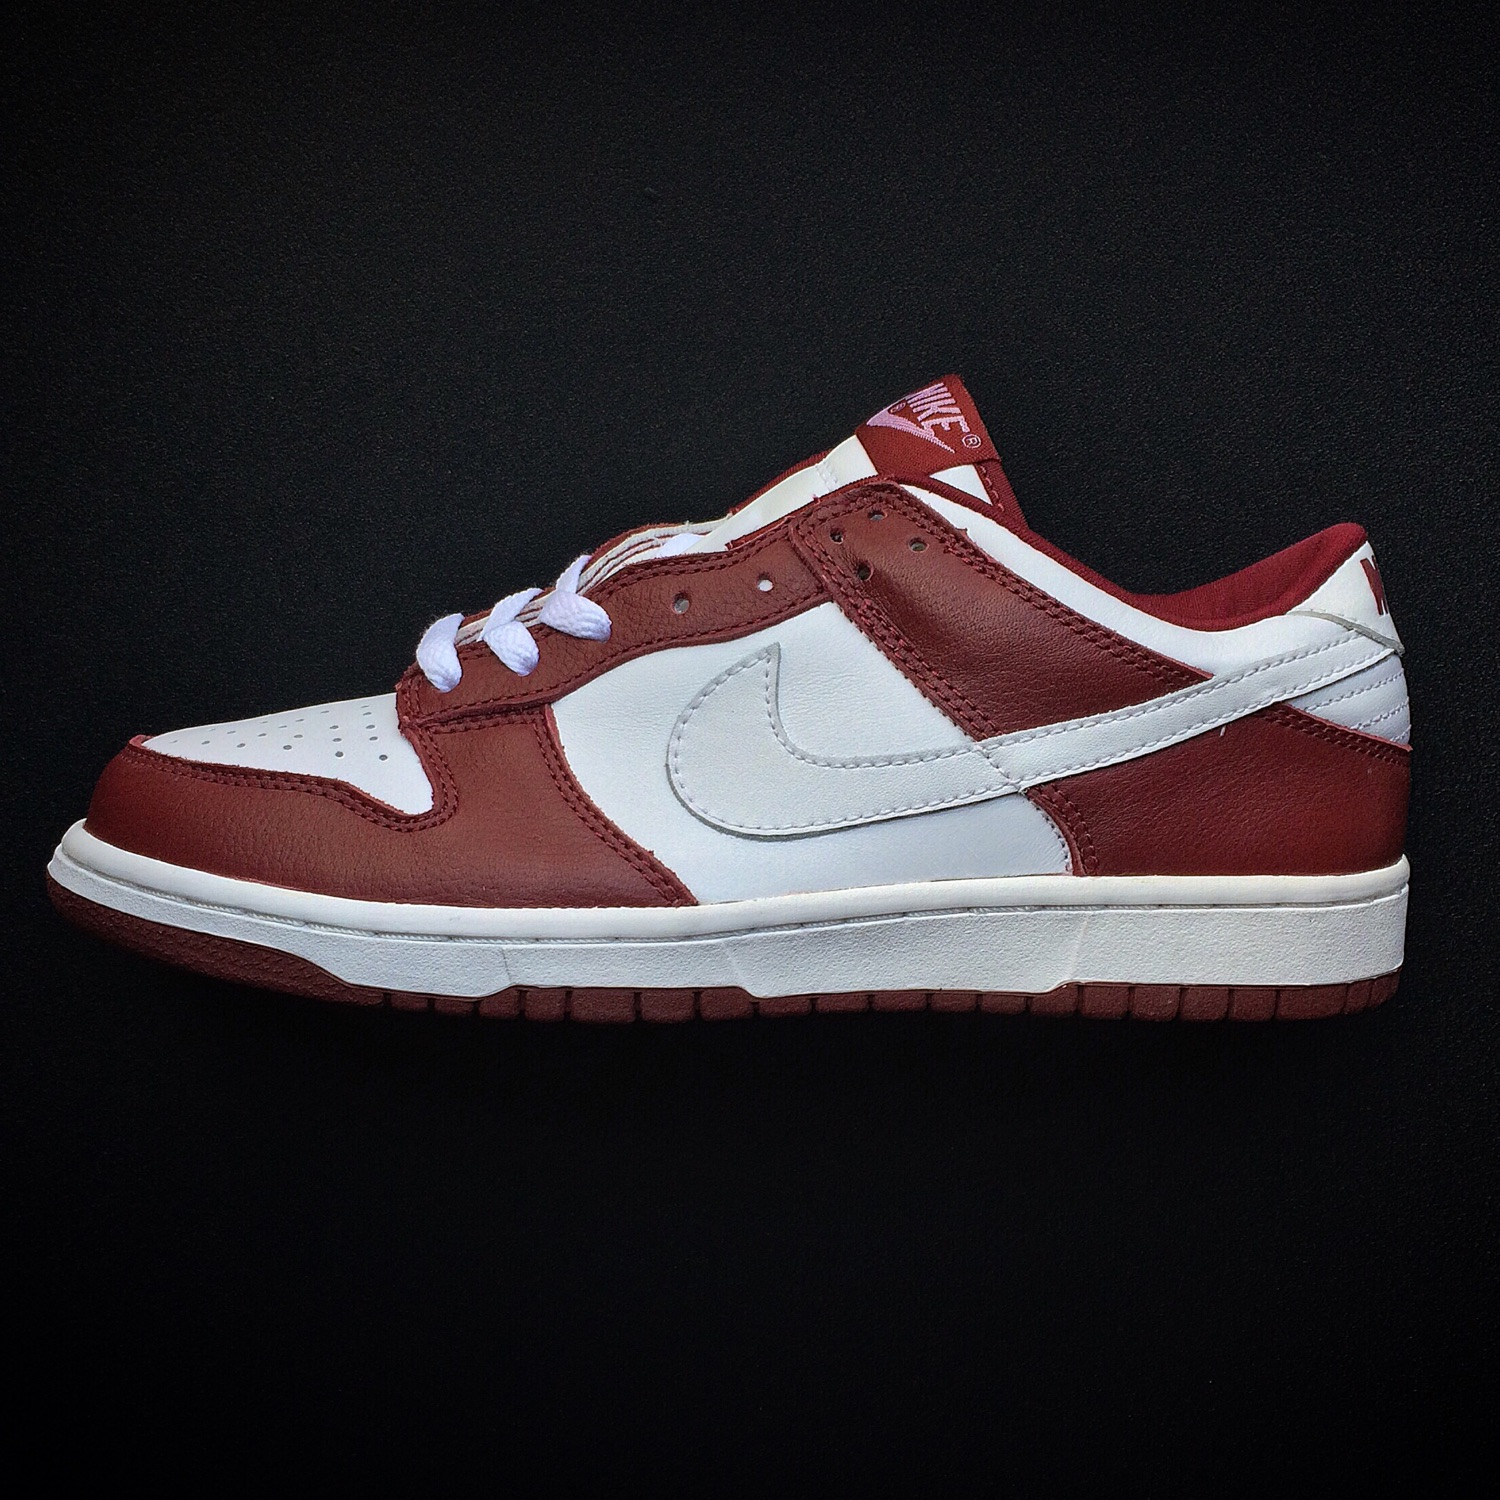 new arrival 12352 3d224 Nike Dunk Low Pro